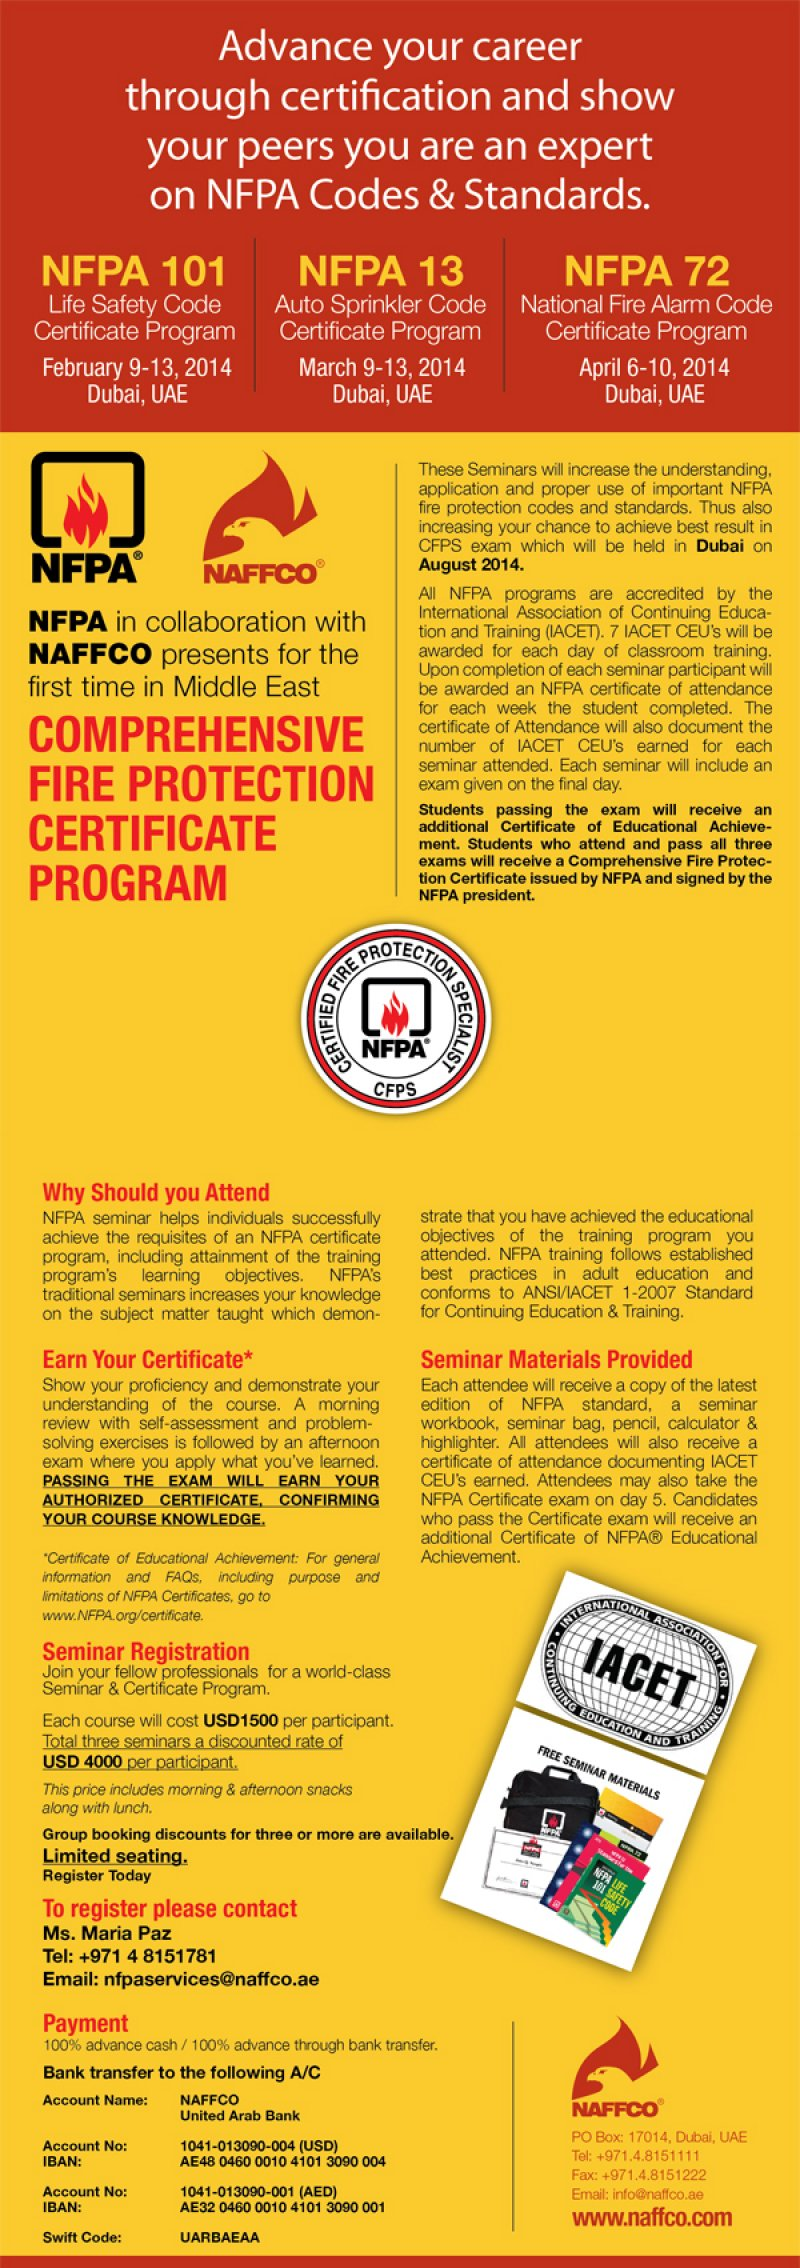 Collaborates with nfpa to provide comprehensive fire protection naffco collaborates with nfpa to provide comprehensive fire protection certificate program xflitez Image collections